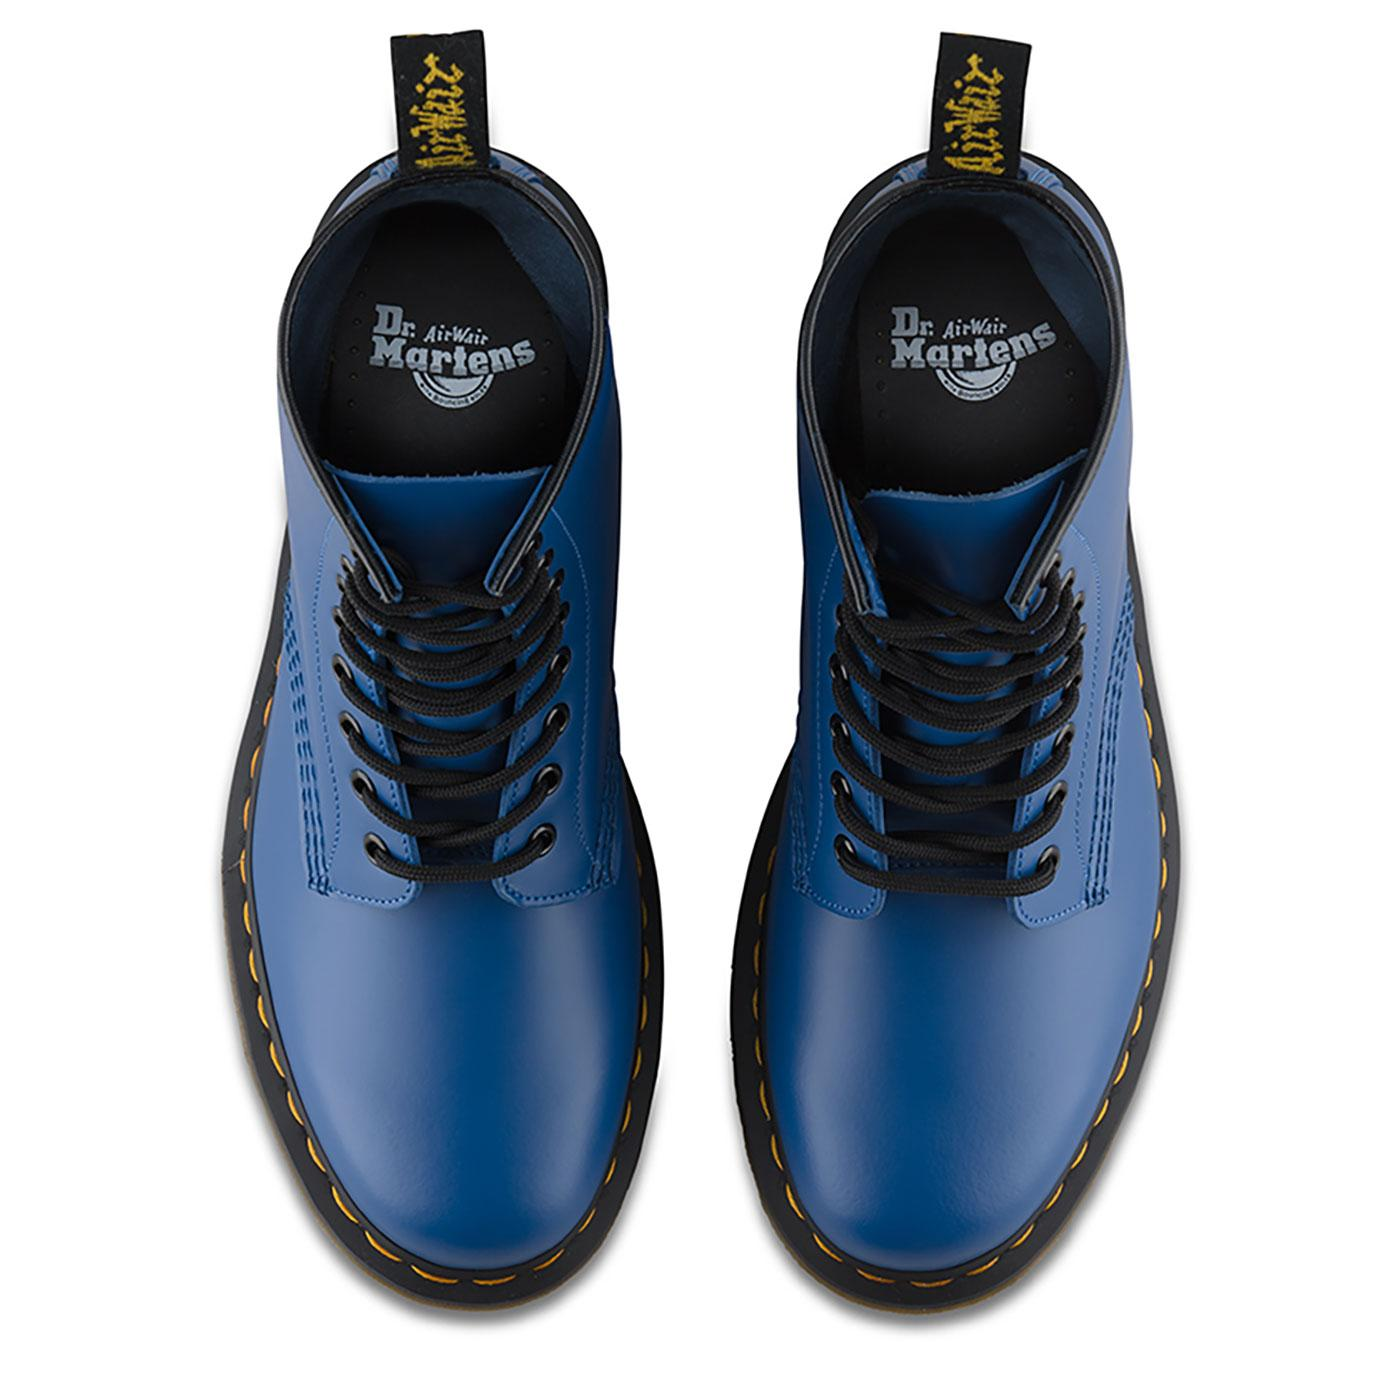 DR MARTENS '1460 Colour Pop' Retro Smooth Boots in Blue